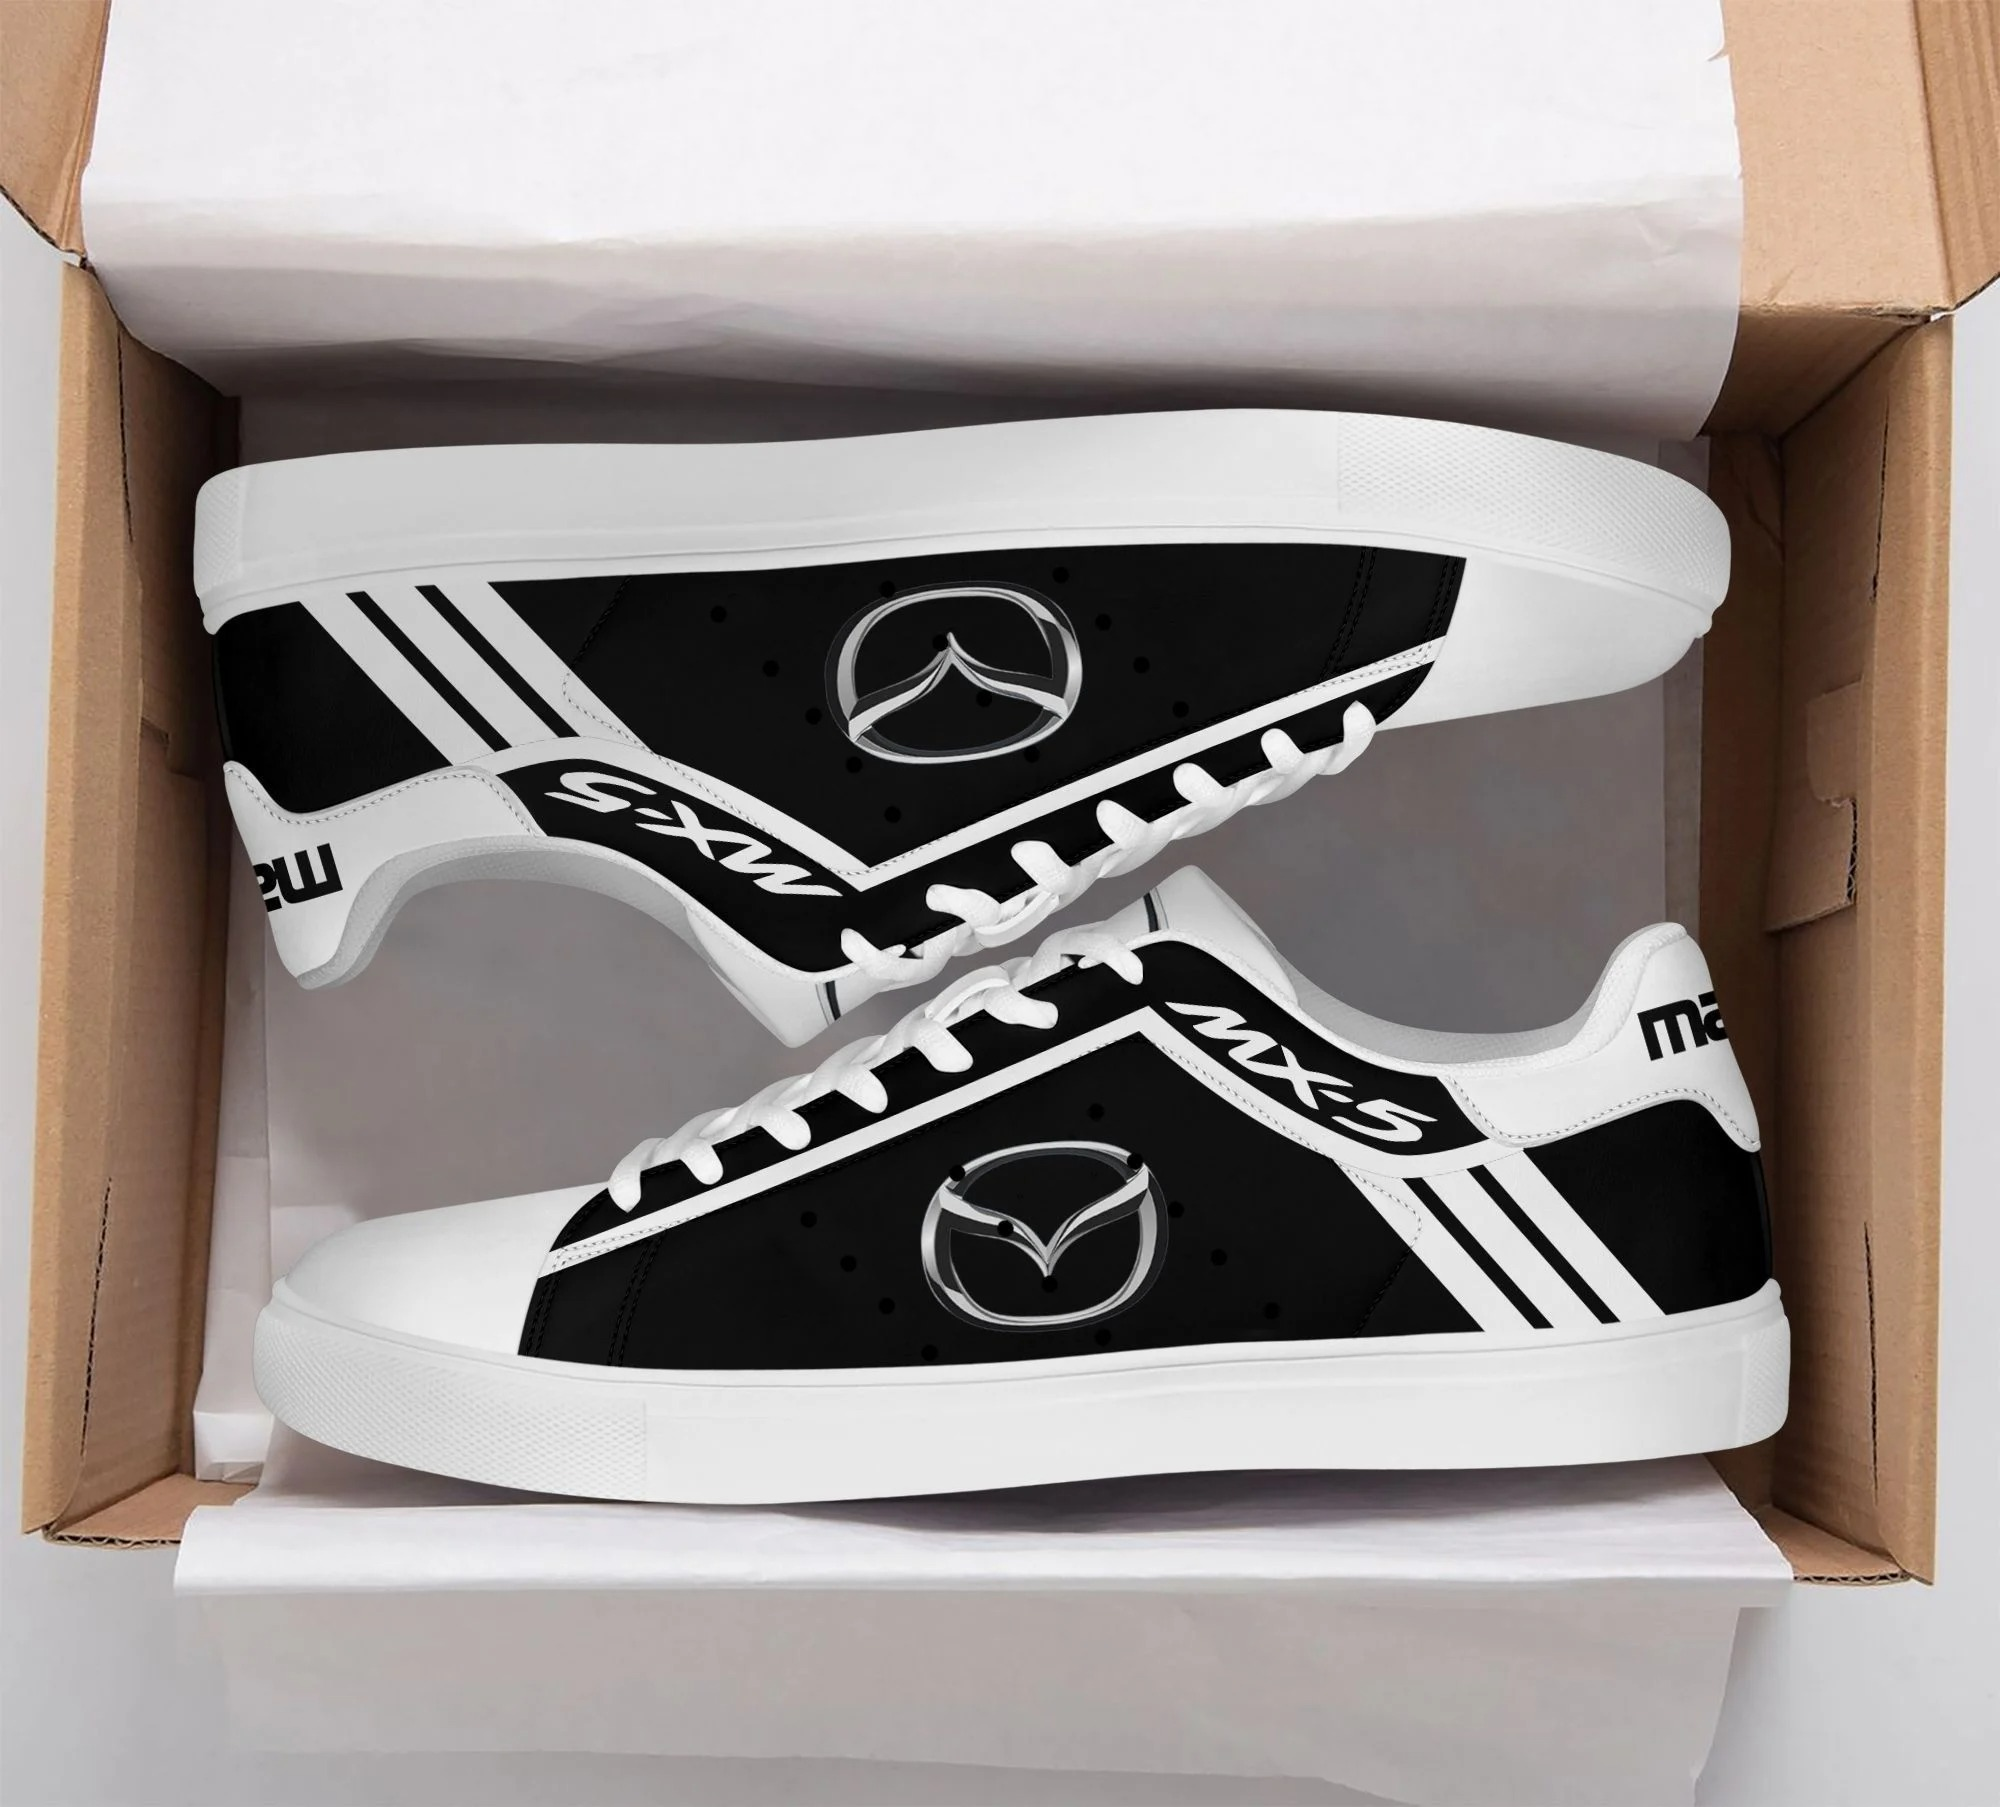 Mazda MX-5 black and white stan smith low top shoes 1